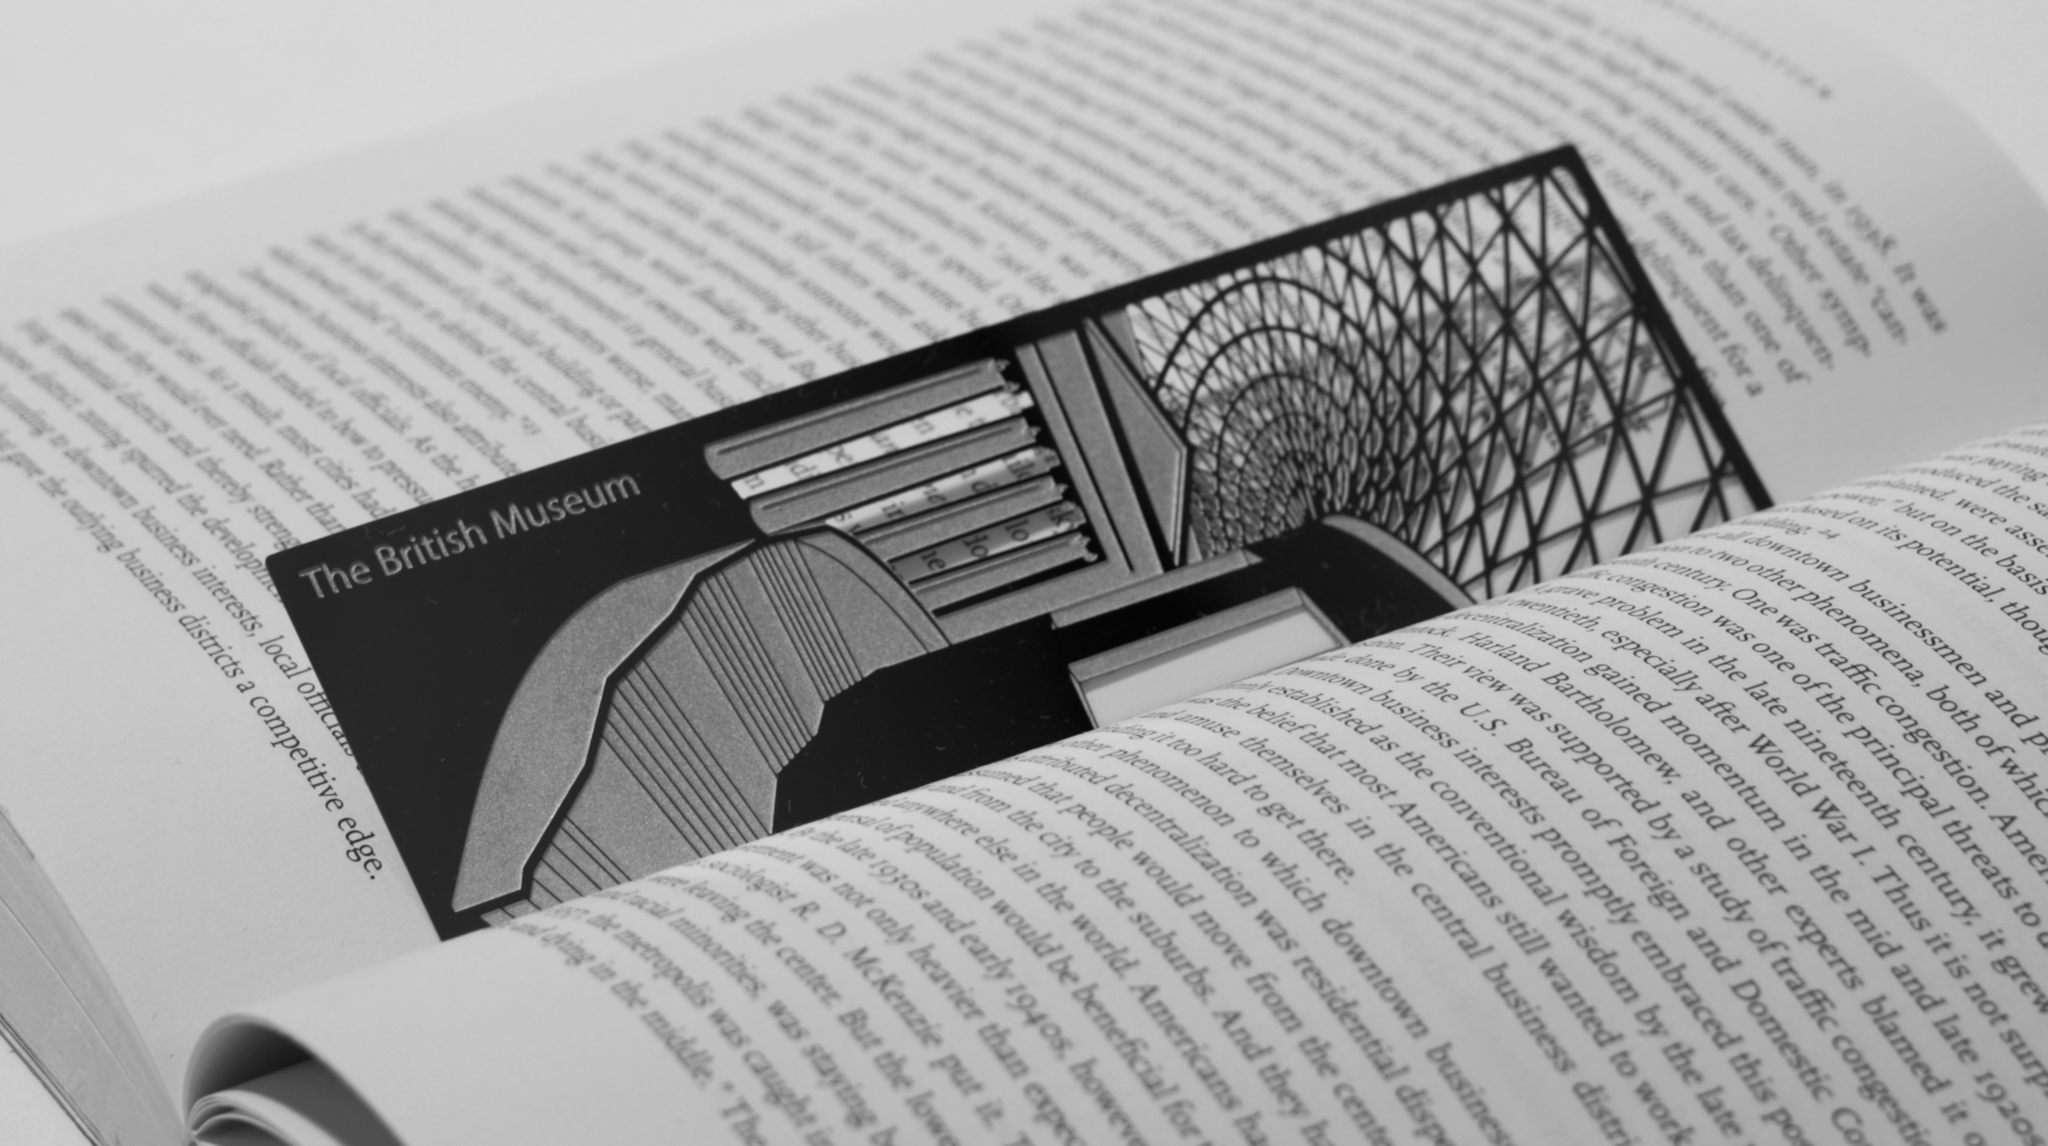 The British Museum - Stainless Steel Bookmark